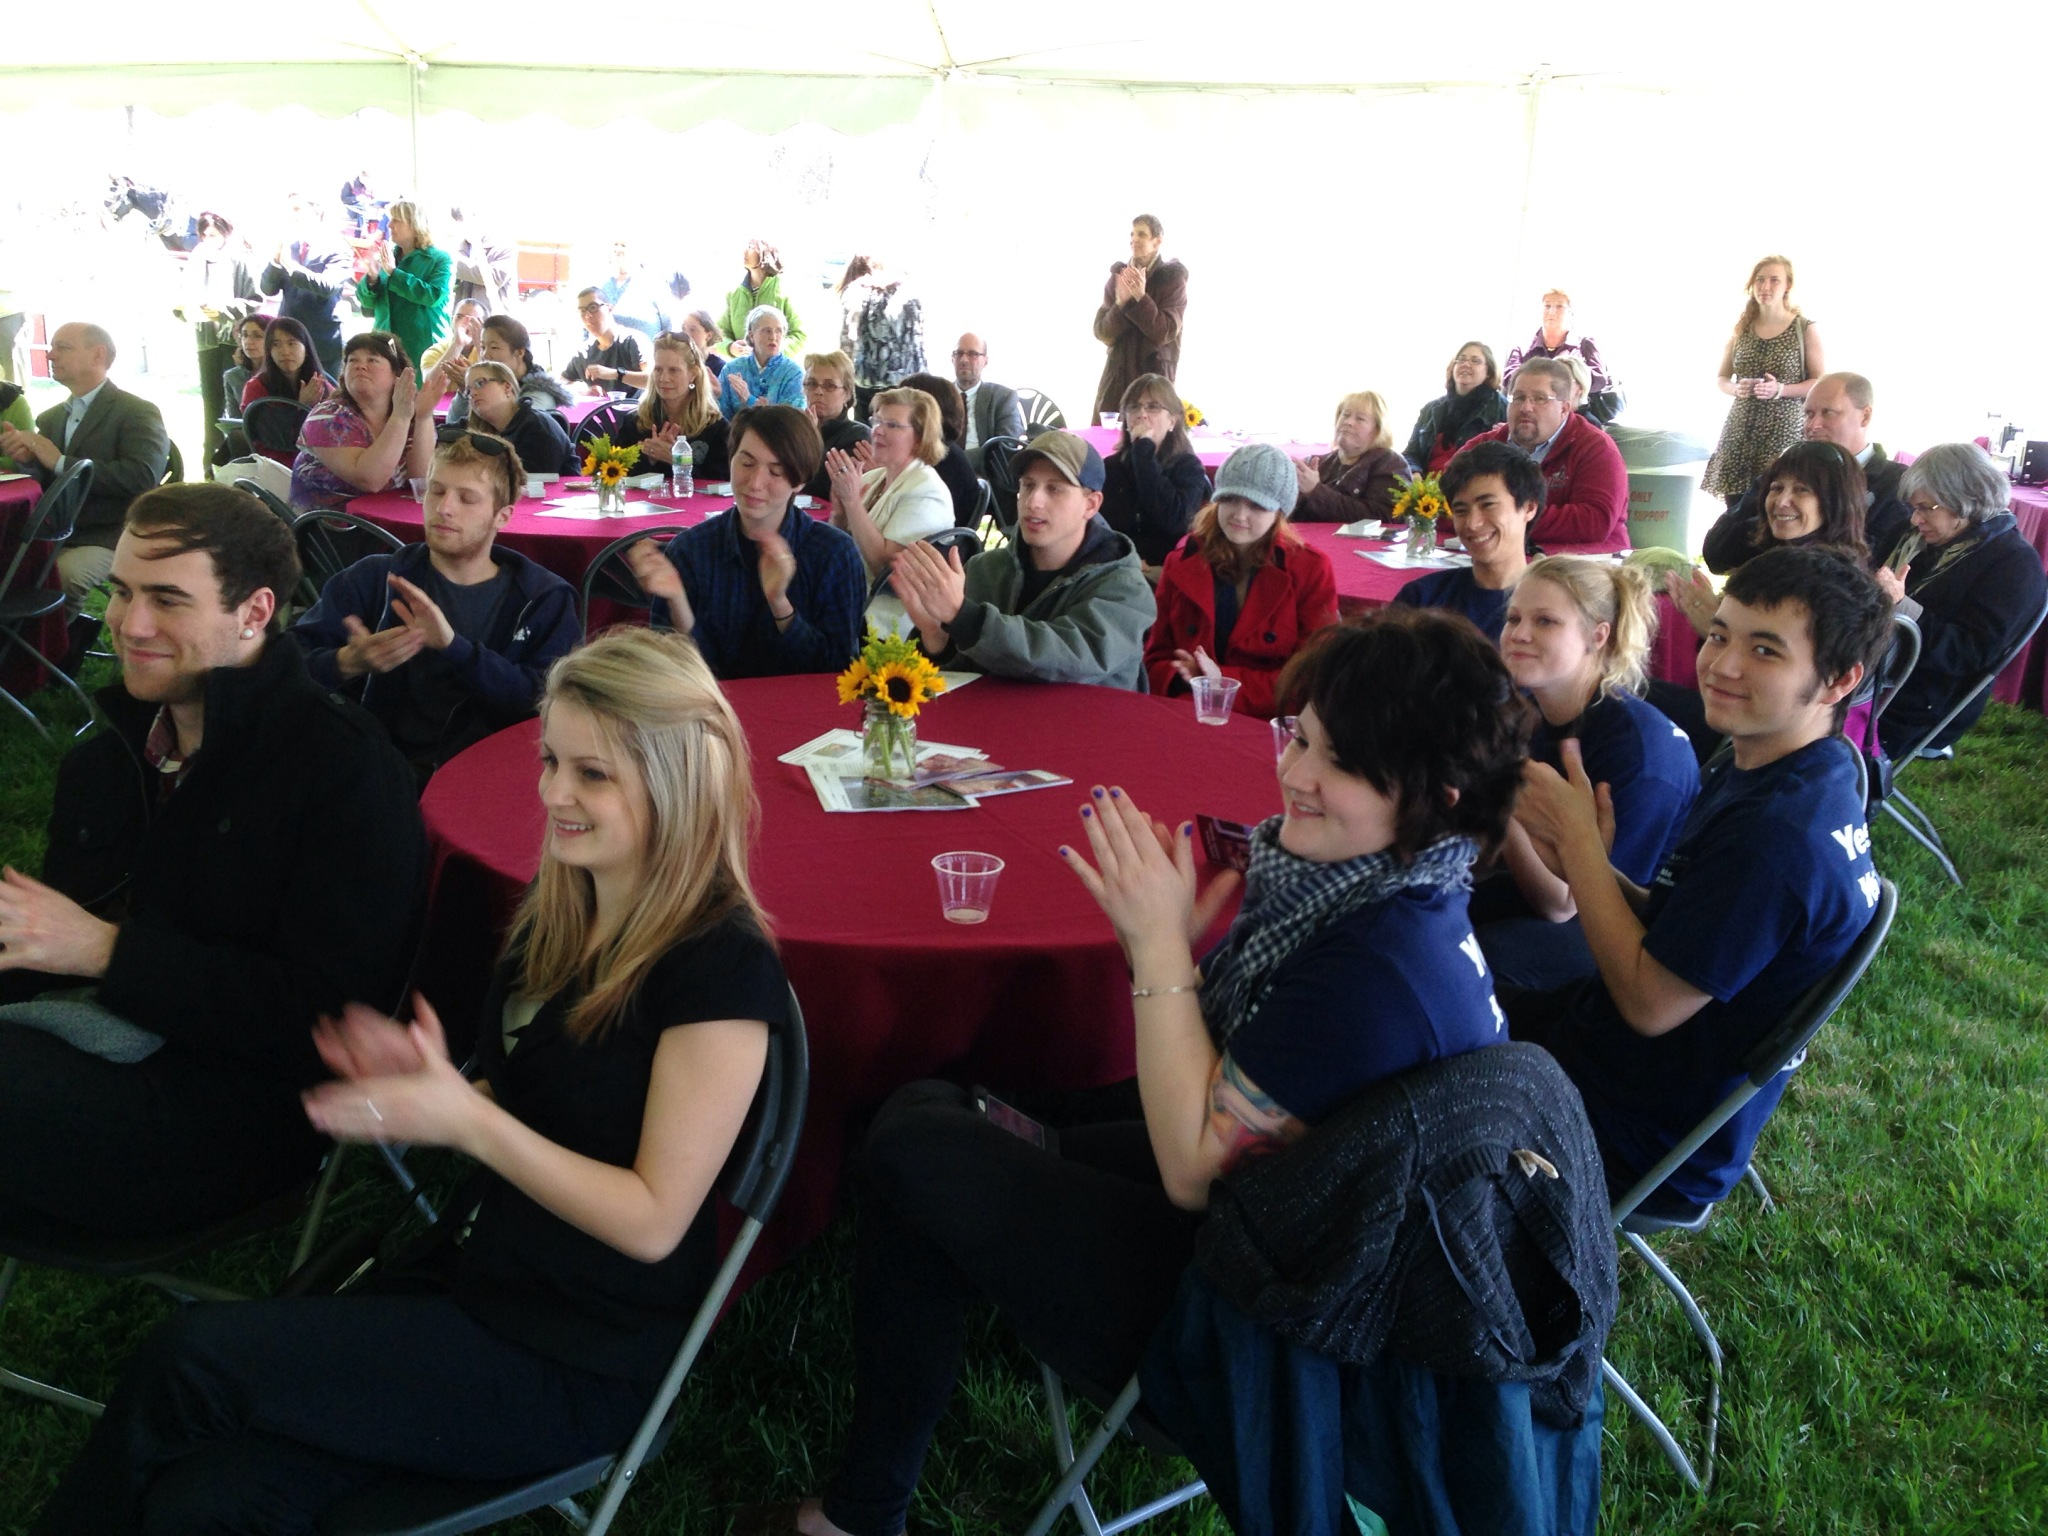 Jordan Teboldi and other Sustainable Food and Farming majors at the groundbreaking